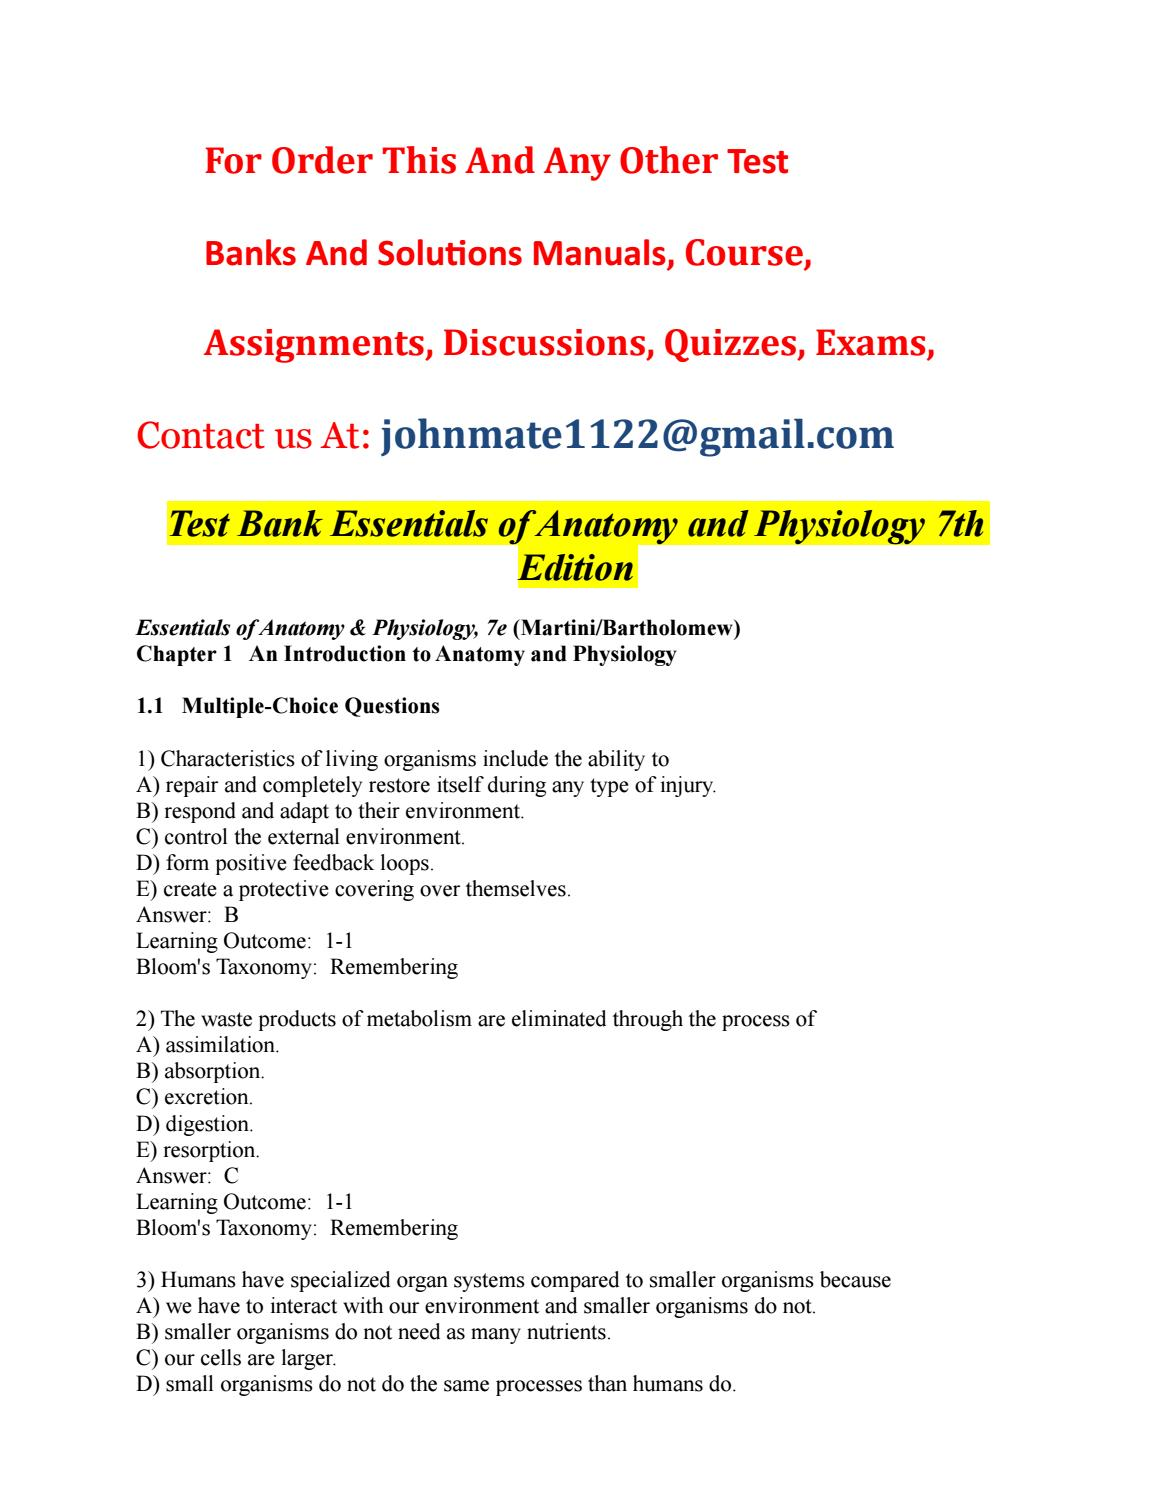 Test%20bank%20essentials%20of%20anatomy%20and%20physiology